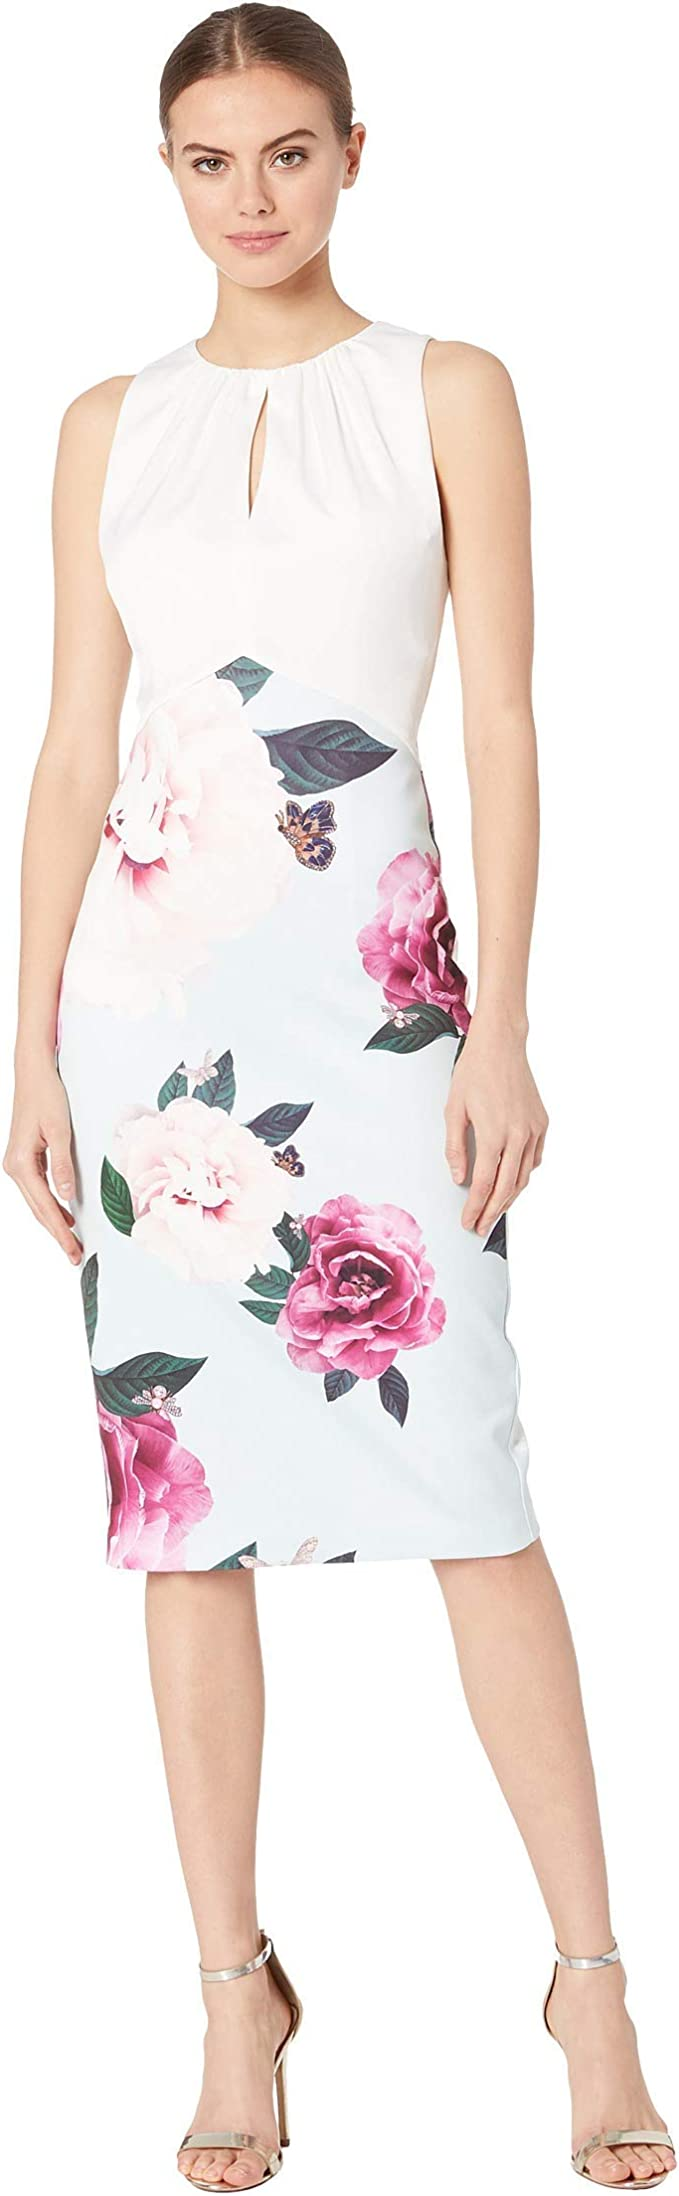 Ted Baker Womens Annile Bodycon Dress: Amazon.es: Ropa y accesorios